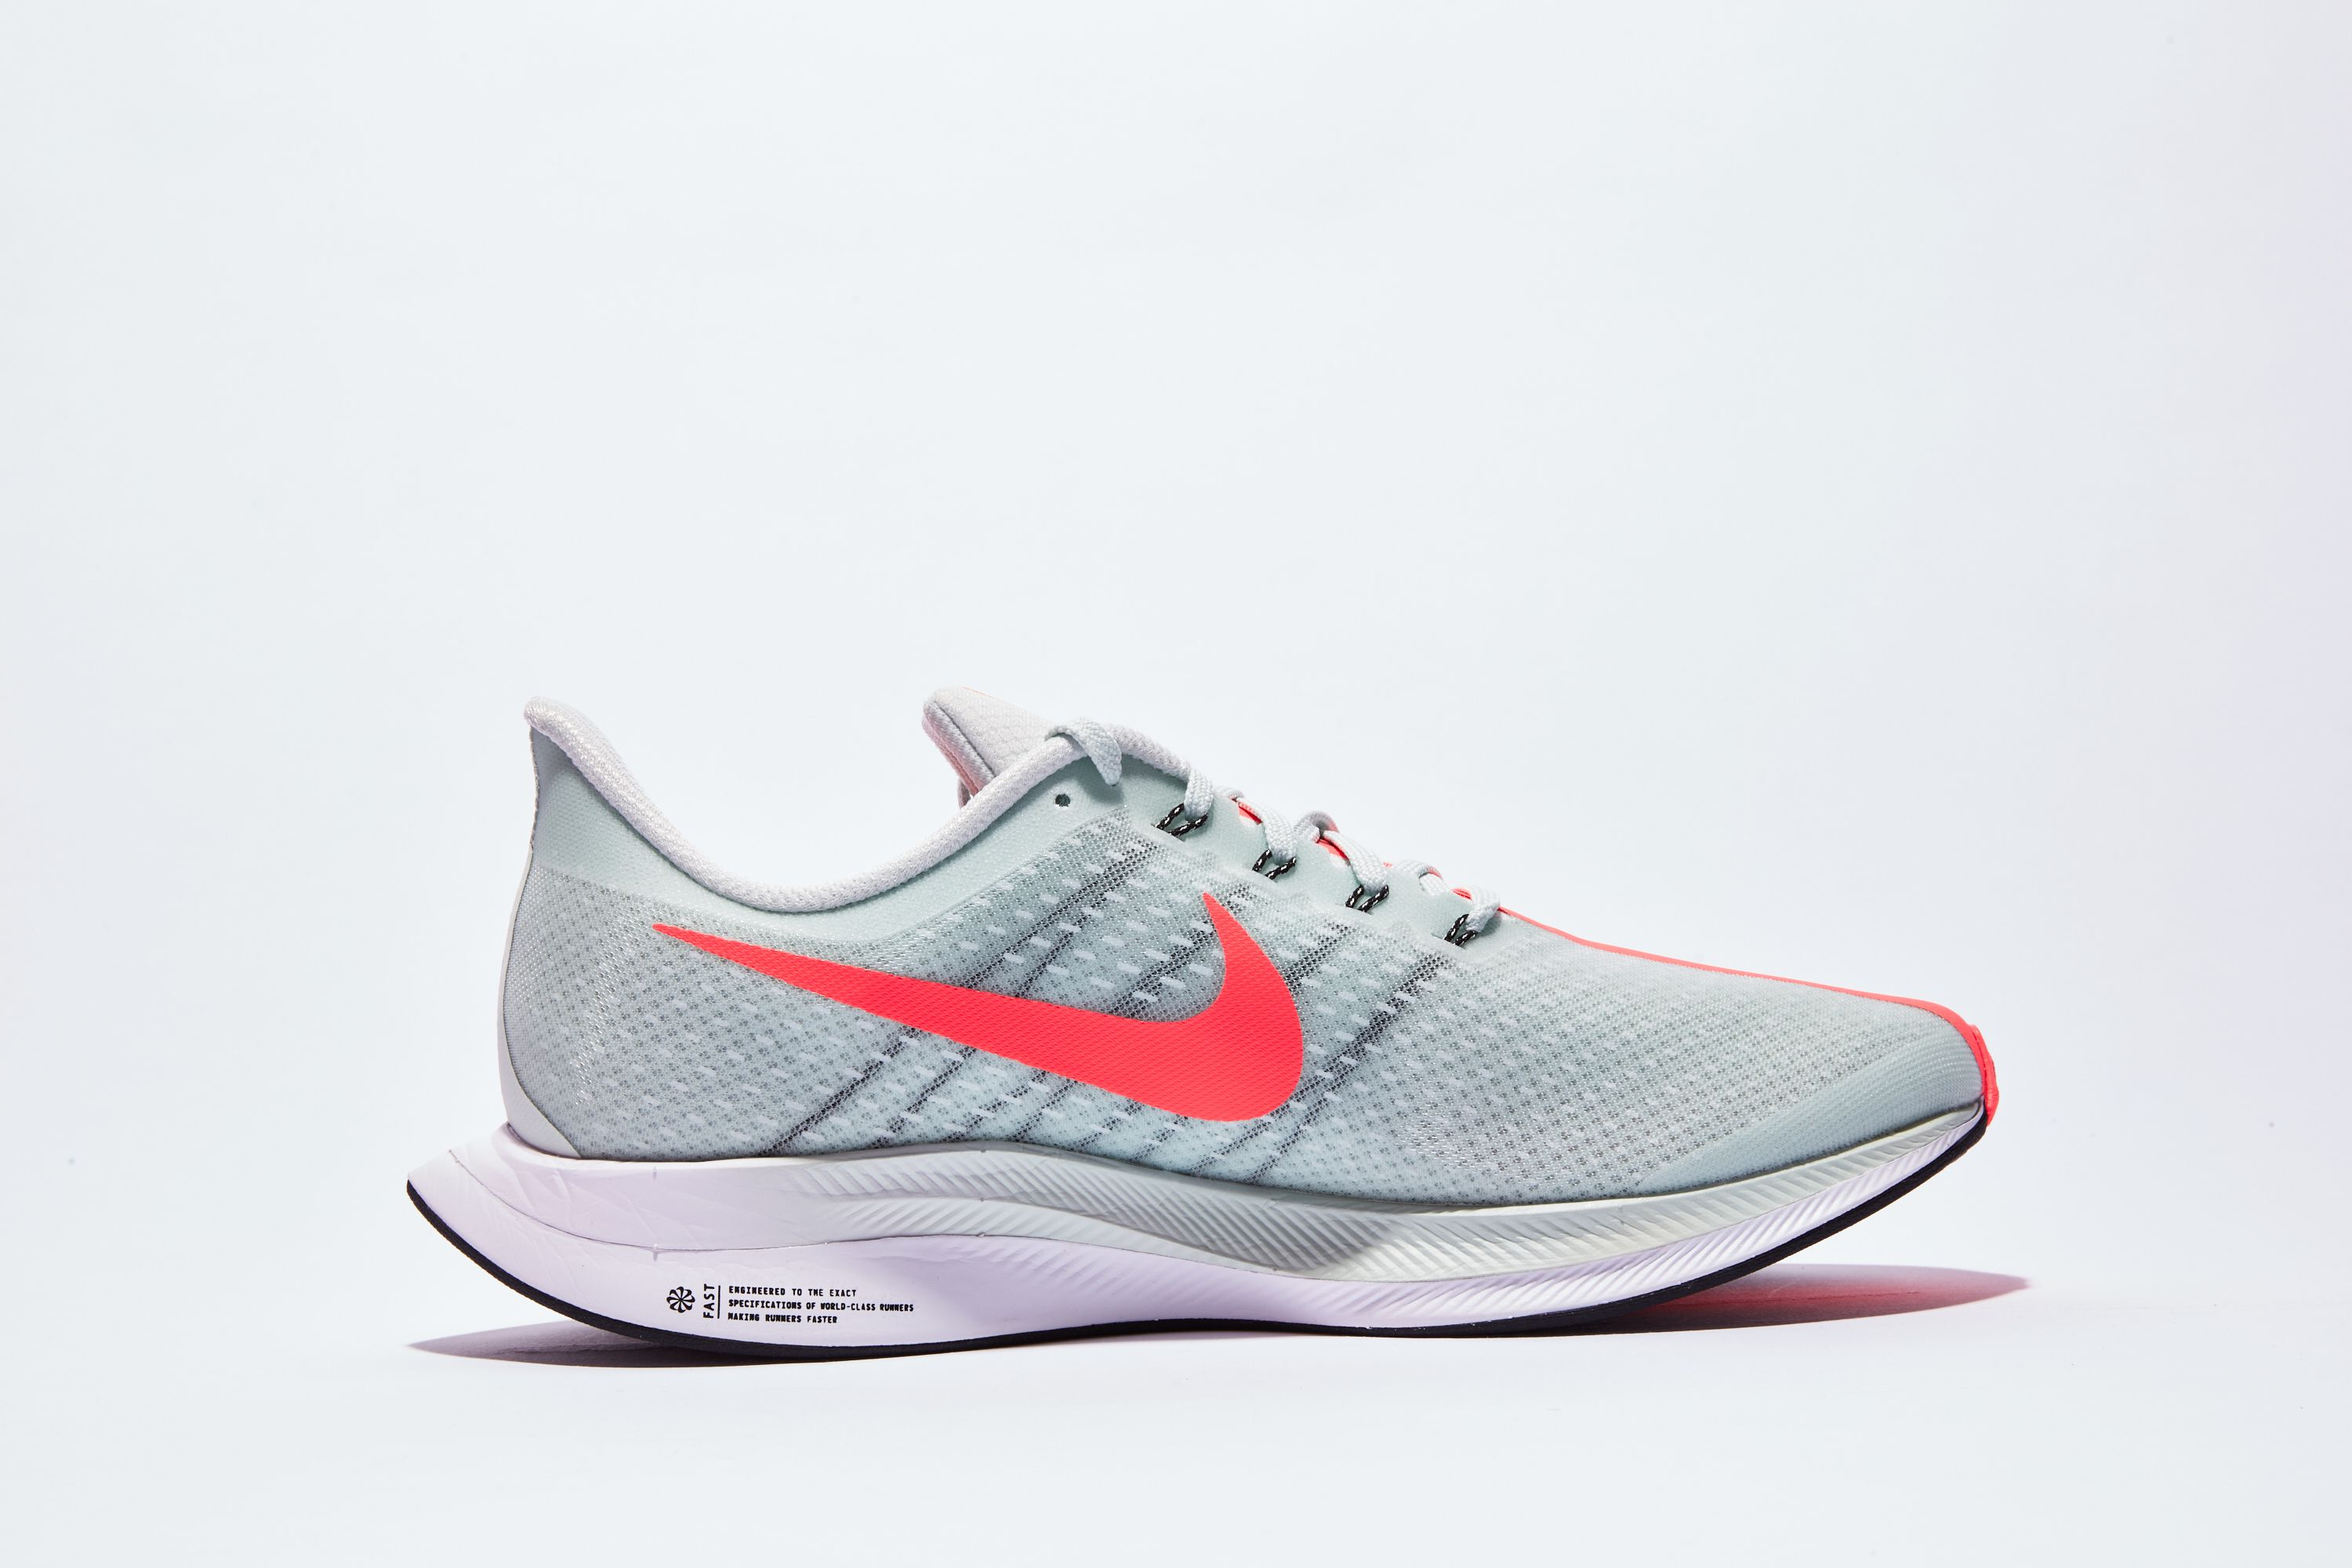 63194bfa82a28 Nike Zoom Pegasus 35 Turbo - Running Shoes for Speed